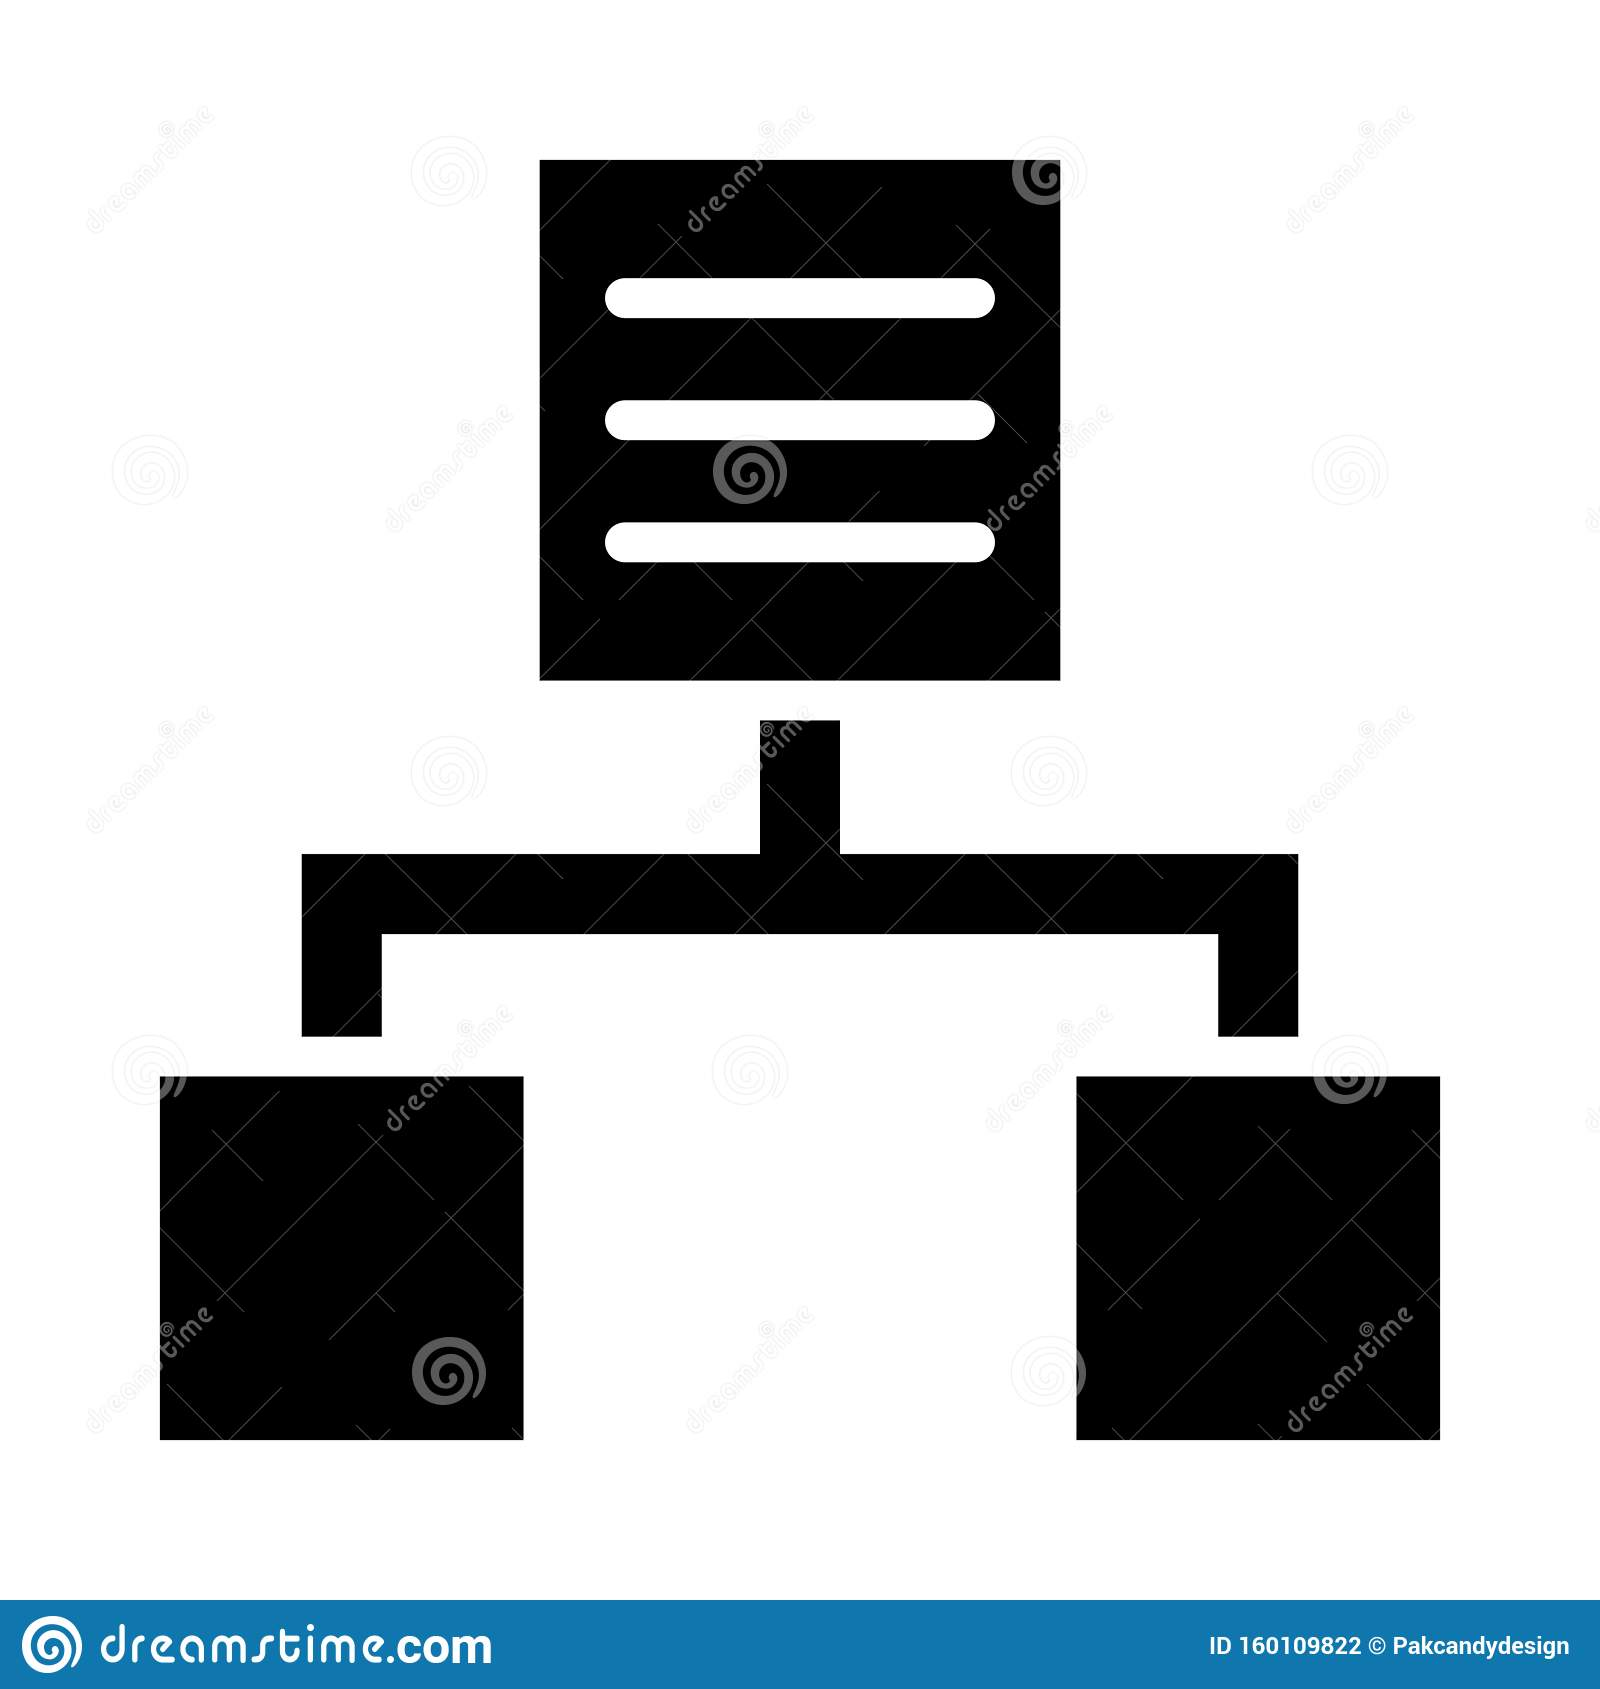 Hierarchy Glyph icon isolated Graphic . Style in EPS 10 simple glyph element business & office concept. editable vector.